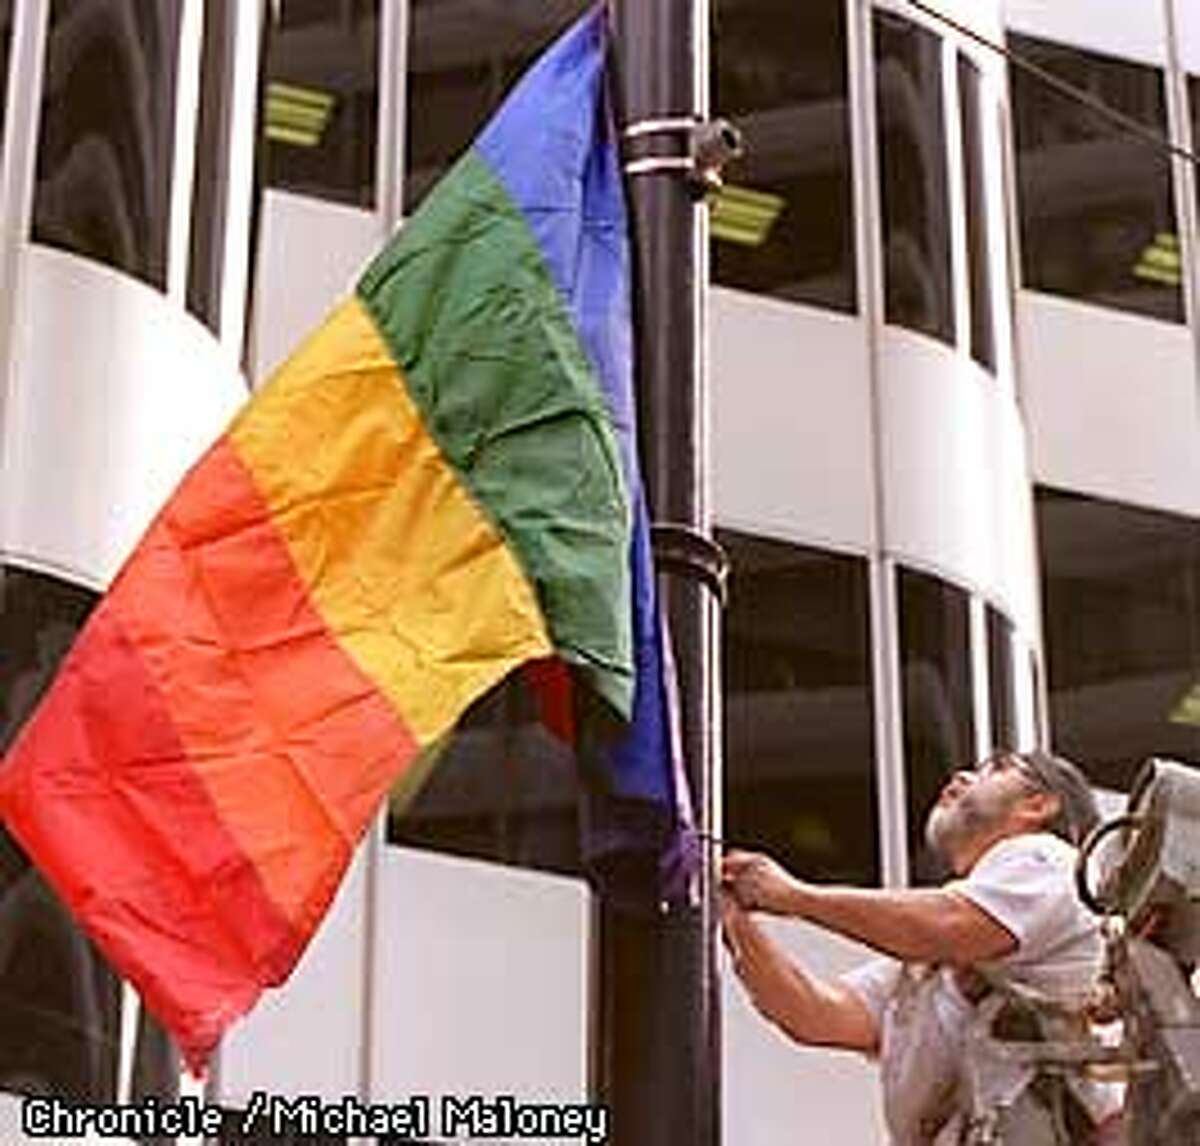 Feliciano Berny of Giampolini and Company (painting contractor) attaches 150 rainbow flags to lightpoles along Market Street. The flags will line the Gay Freedom Day parade route. Photo by Michael Maloney